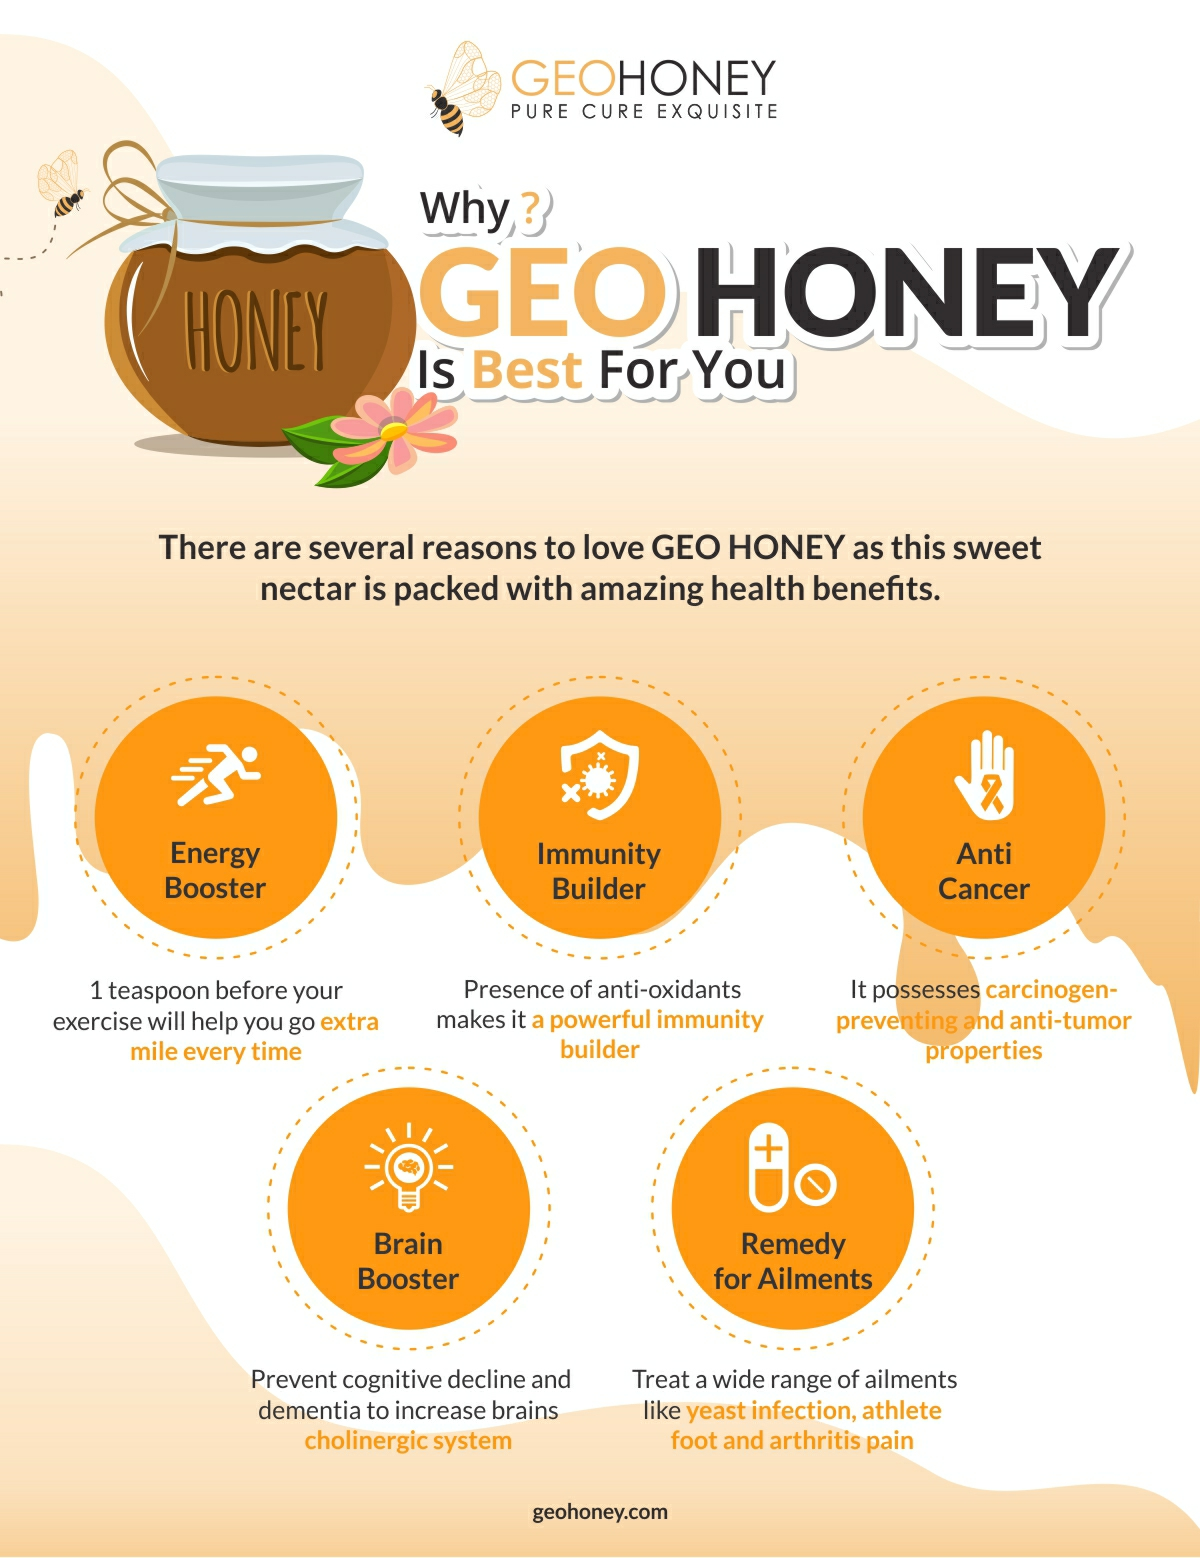 Geohoney is best for you